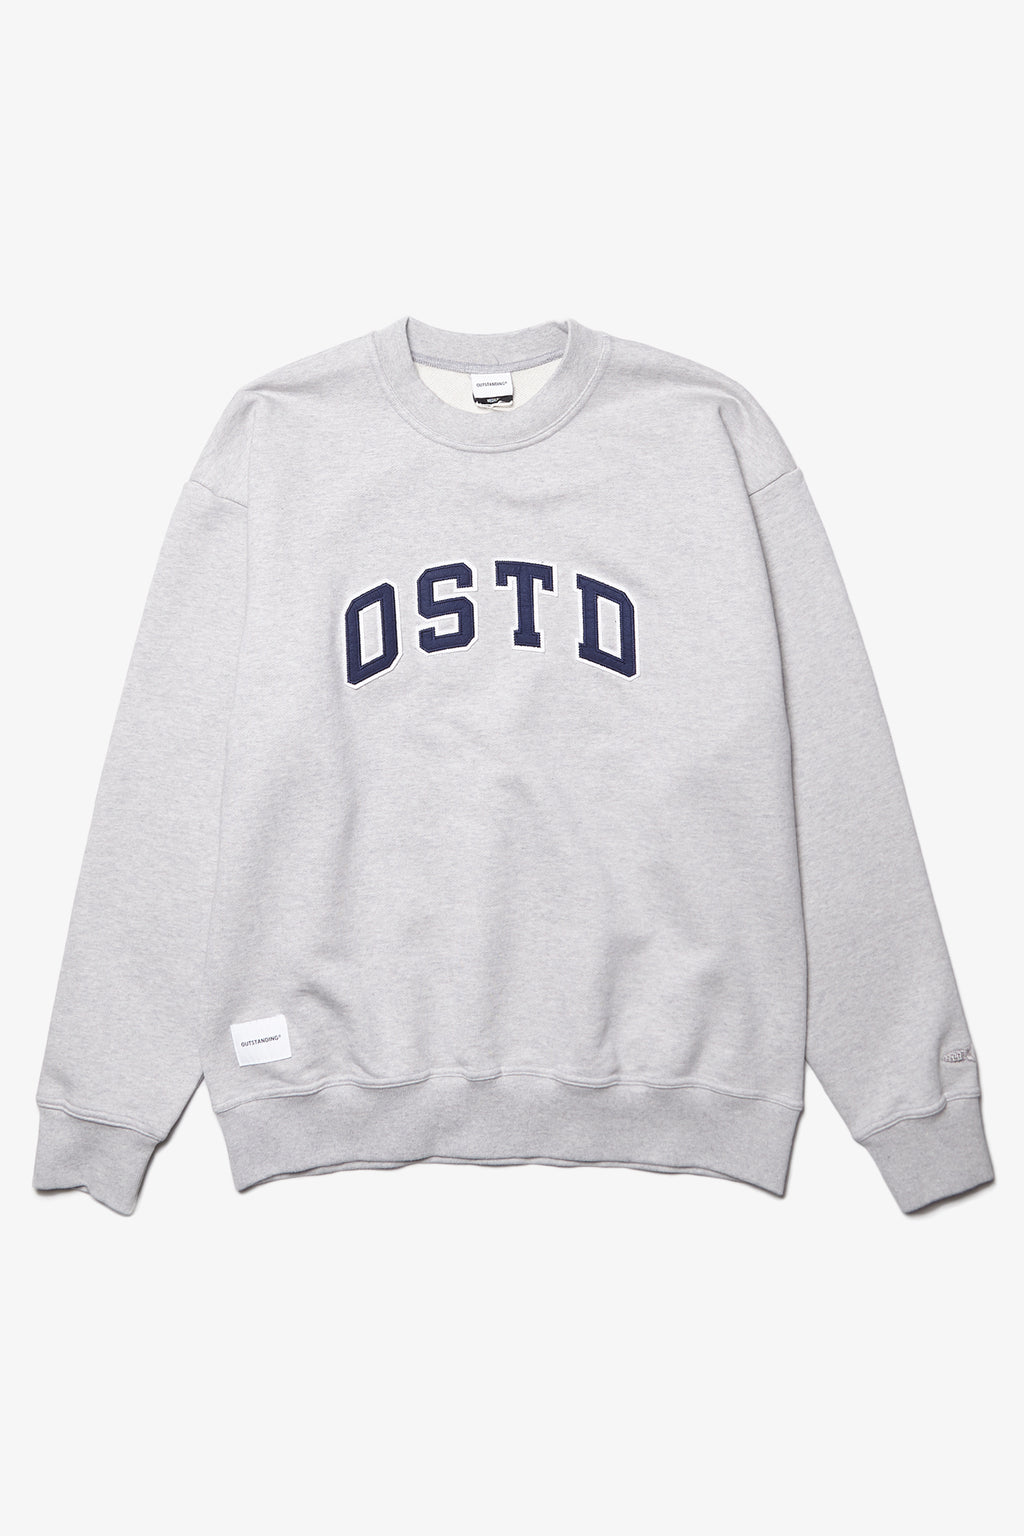 Outstanding & Co. - OSTD Collegiate Sweatshirt - Grey